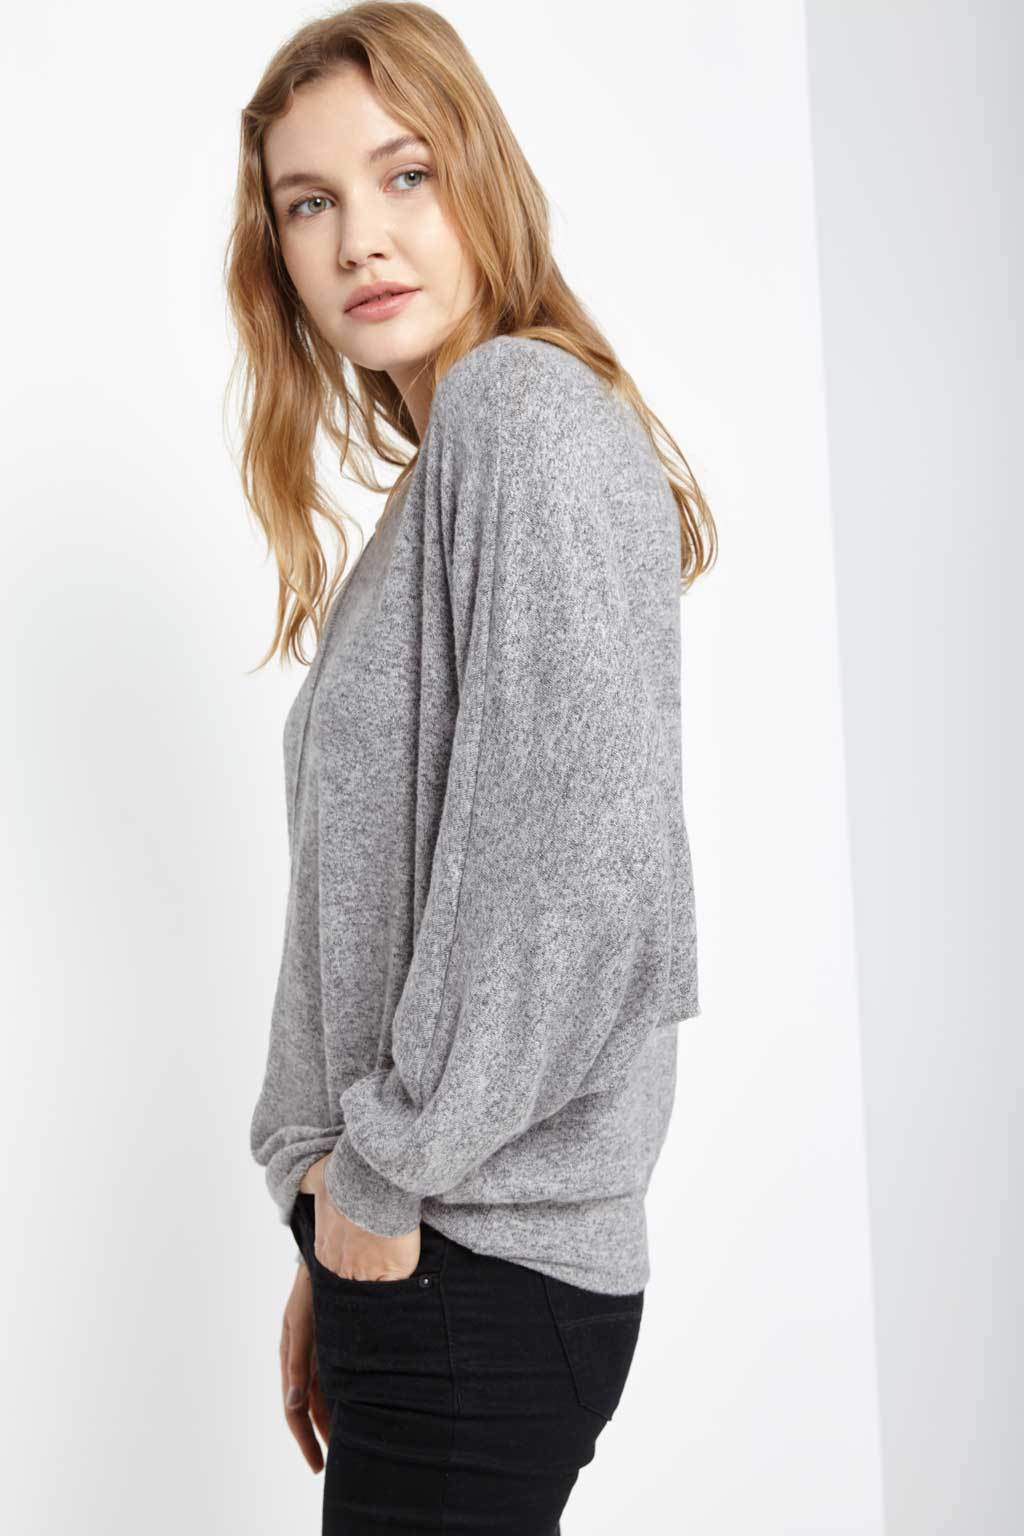 Poshsquare Tops Wells Dolman Sleeve Top